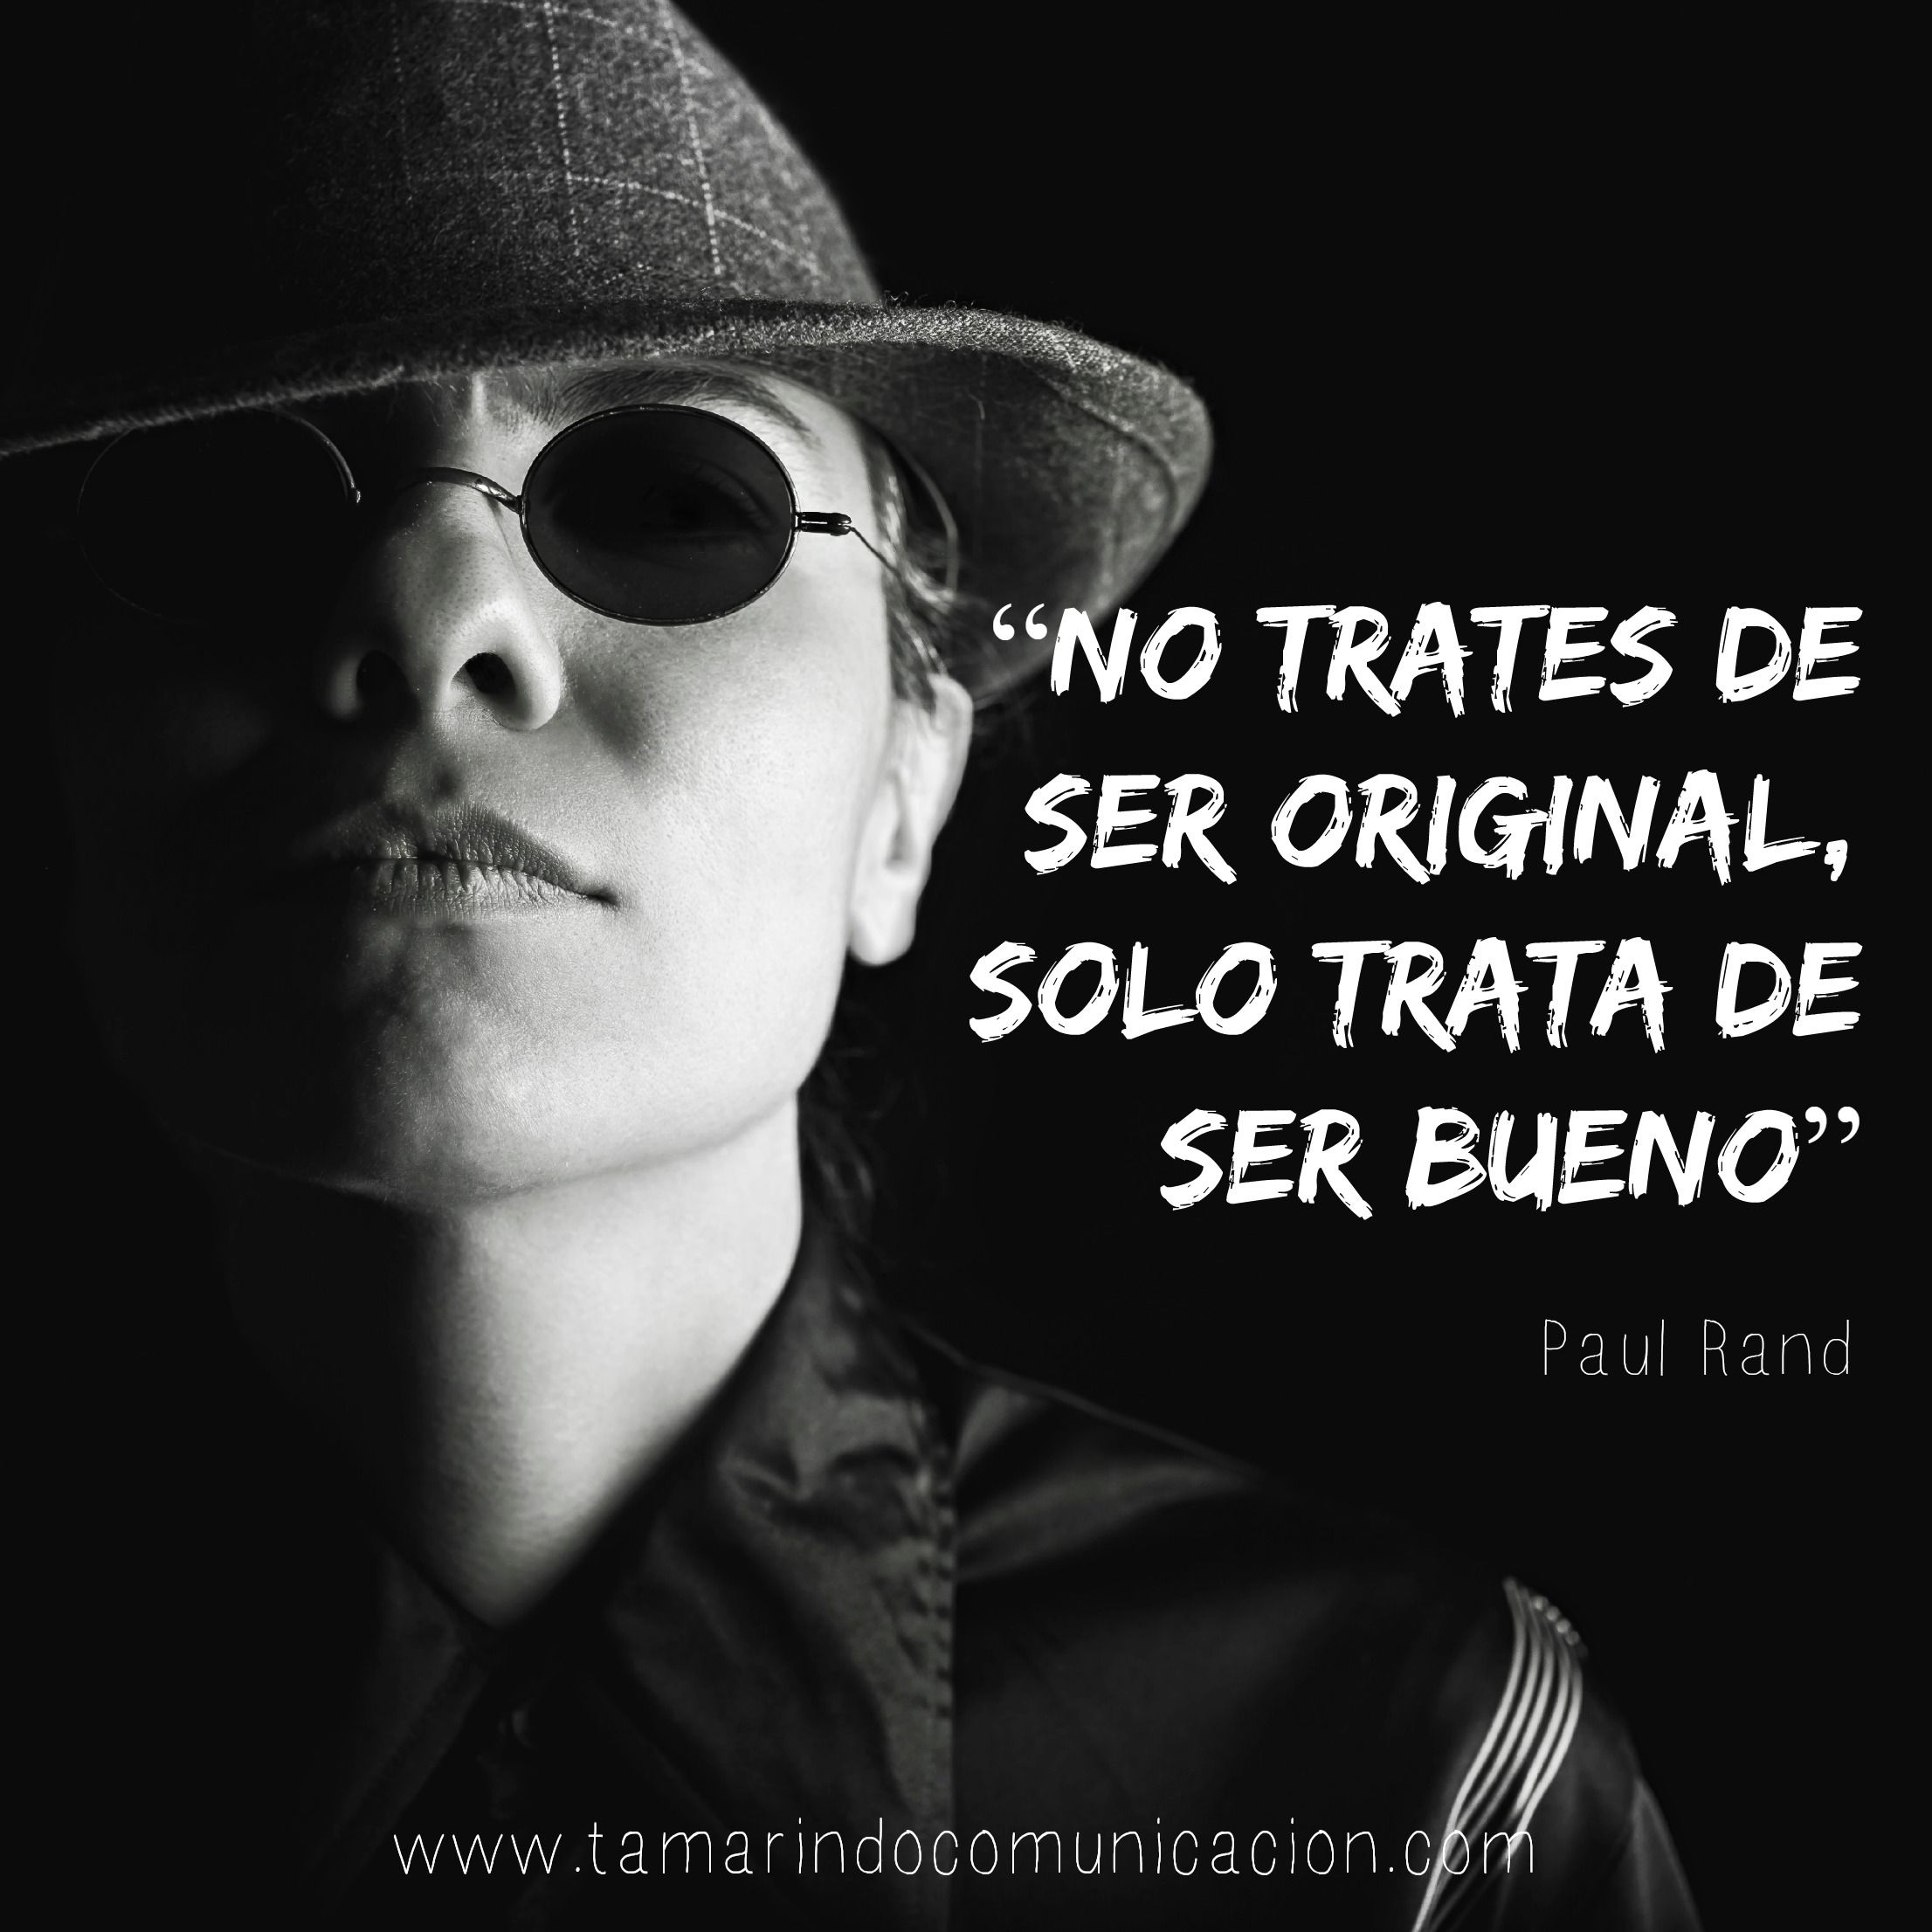 """No trates de ser original, solo trata de ser bueno"" Paul Rand #frases #publicidad #marketing #creatividad #quotes"